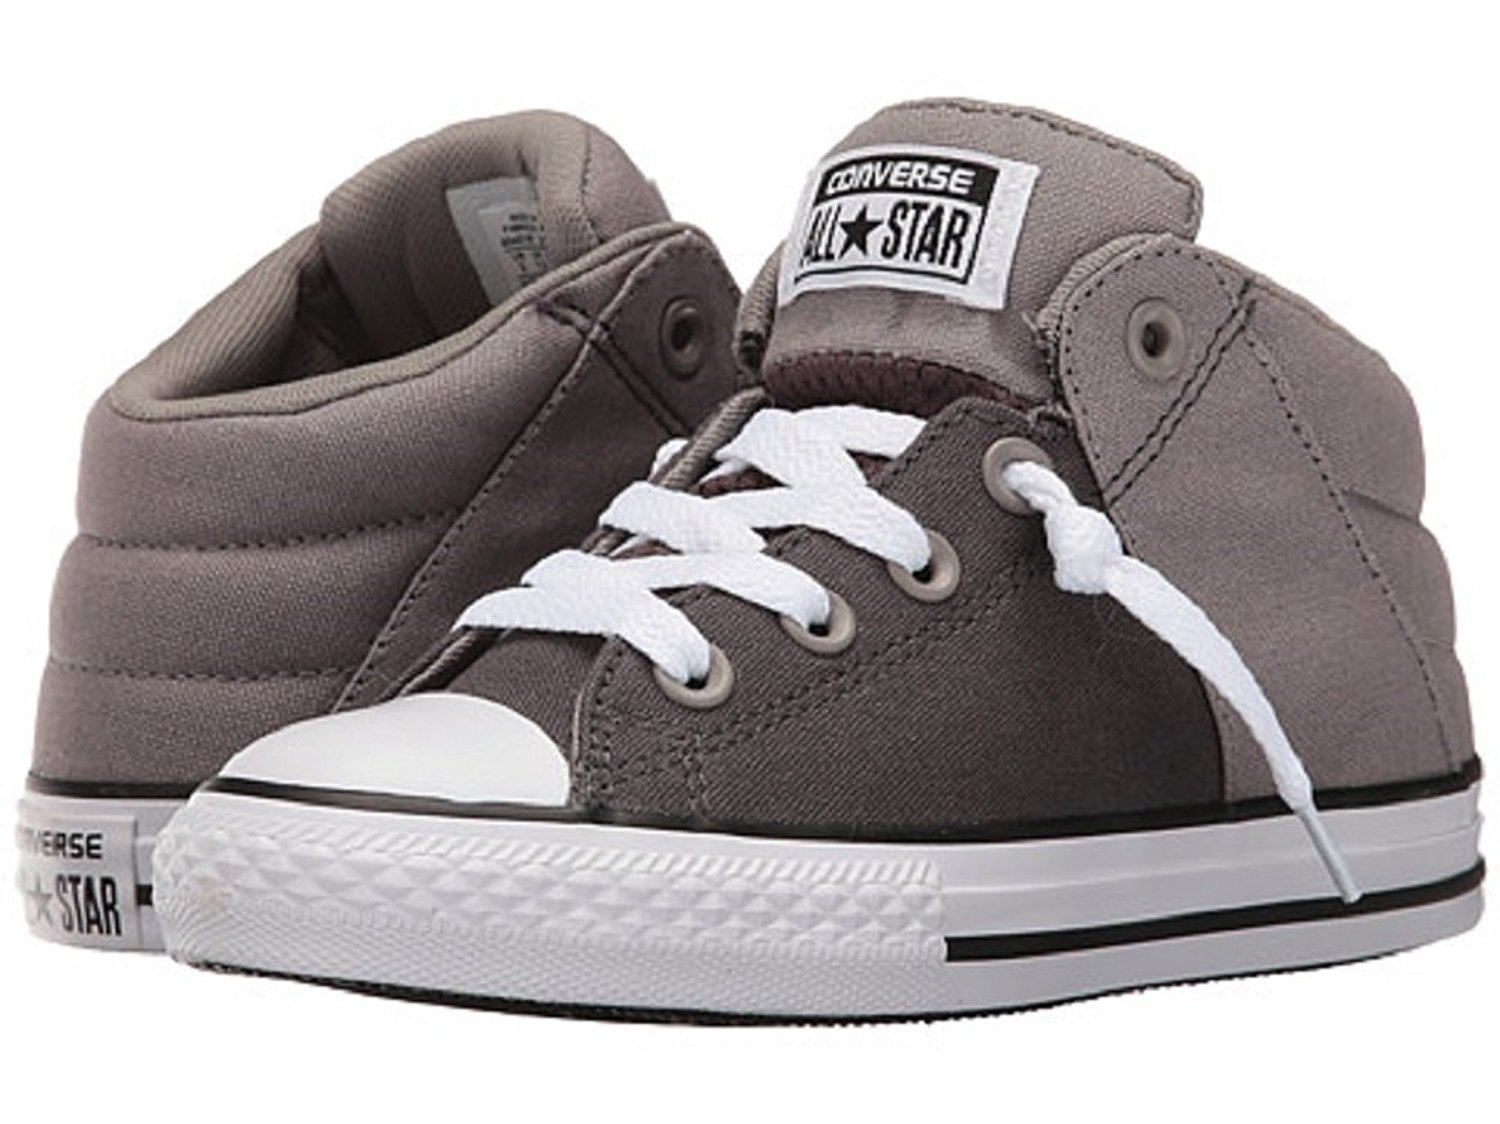 ac61963853d2 Get Quotations · Converse Chuck Taylor All Star Axel - Kids-11.5